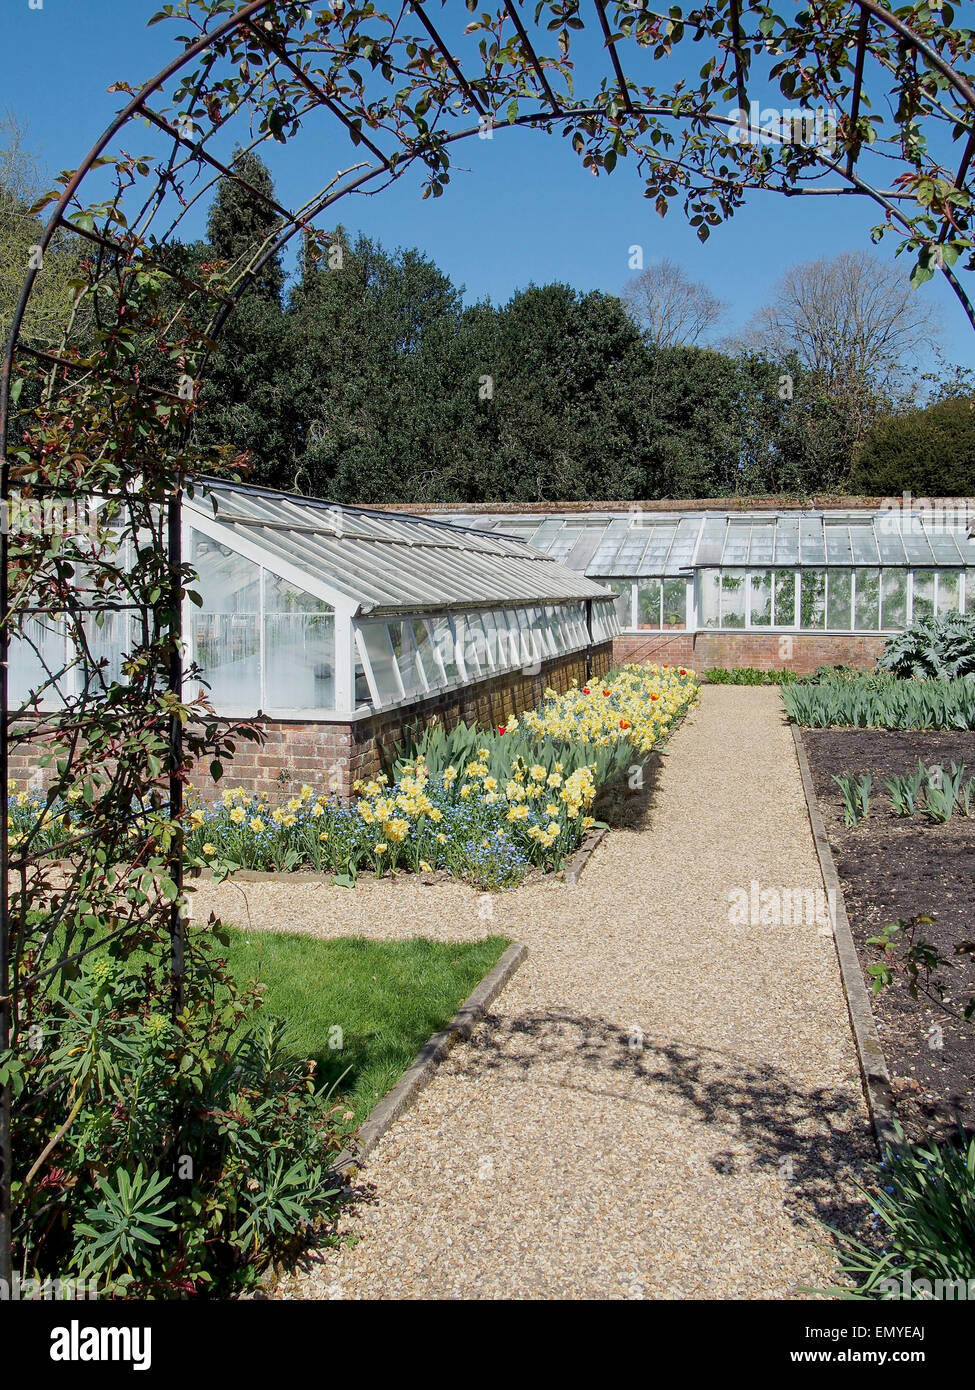 Traditional glasshouses (or greenhouses) within the walled garden of a large country house. - Stock Image